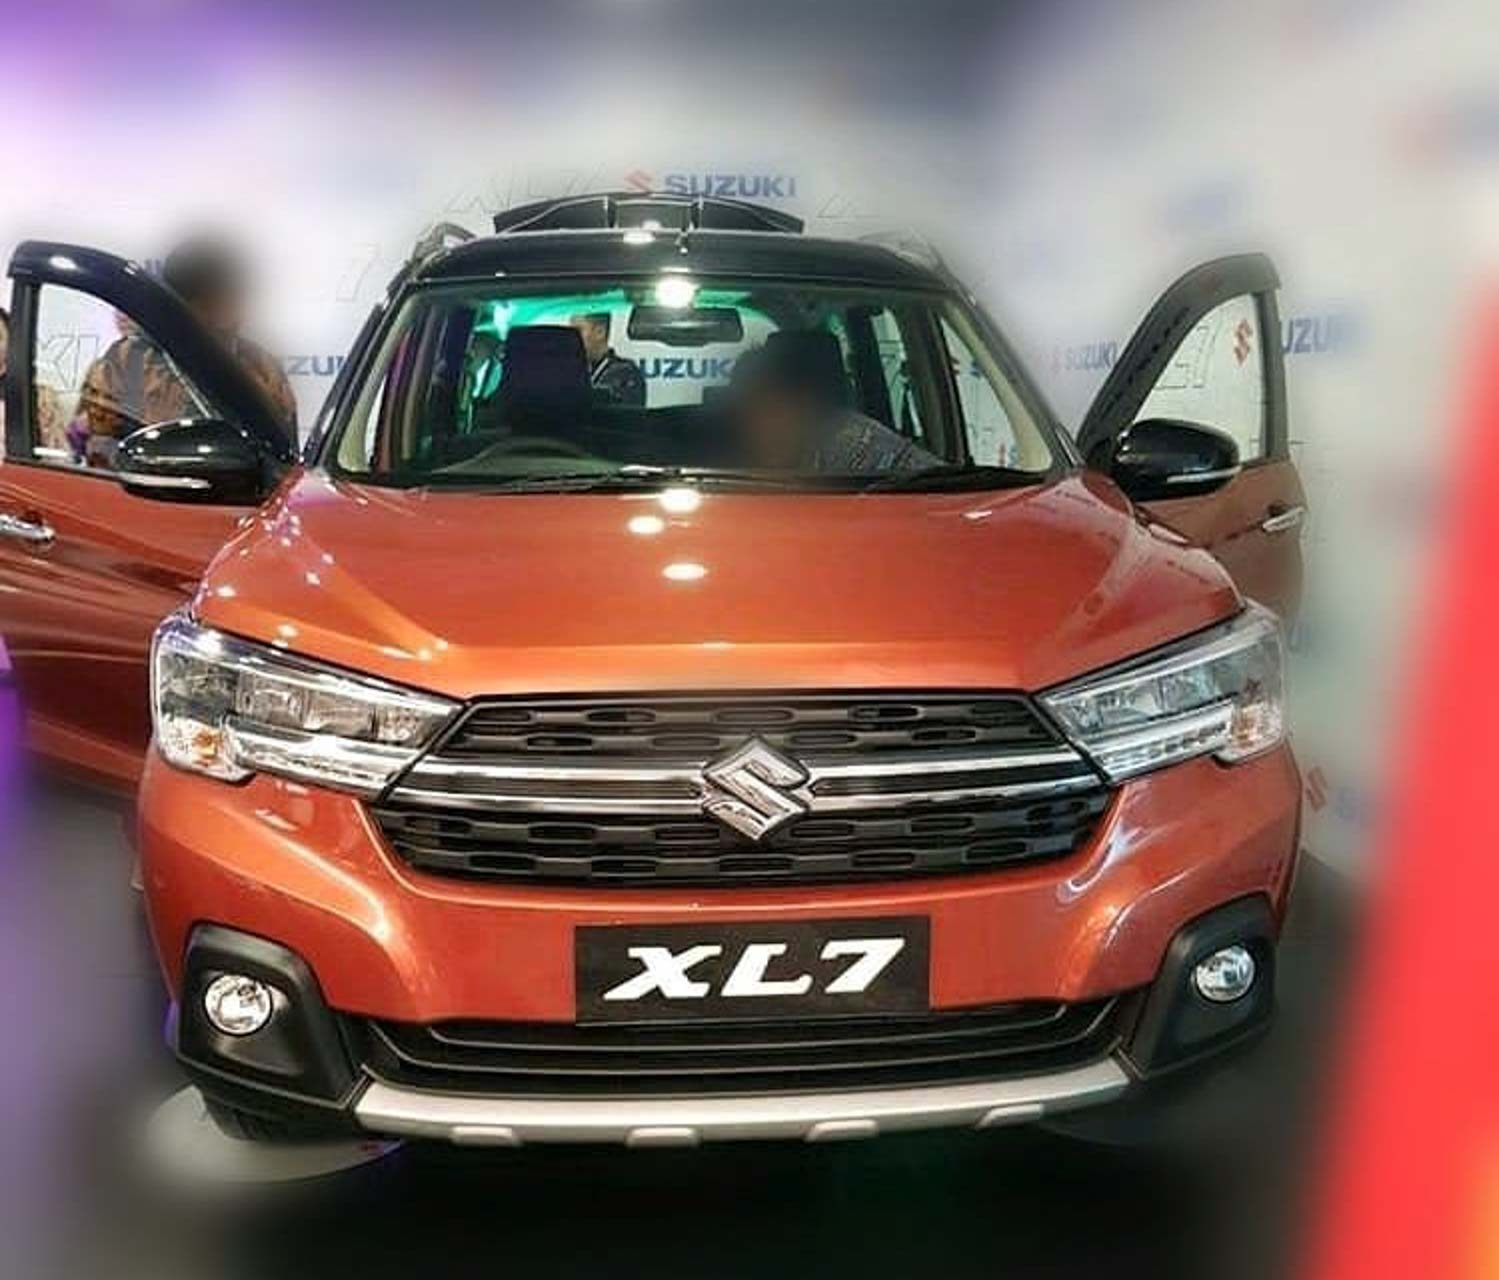 suzuki xl7 prices specs and variants leaked ahead of launch suzuki xl7 prices specs and variants